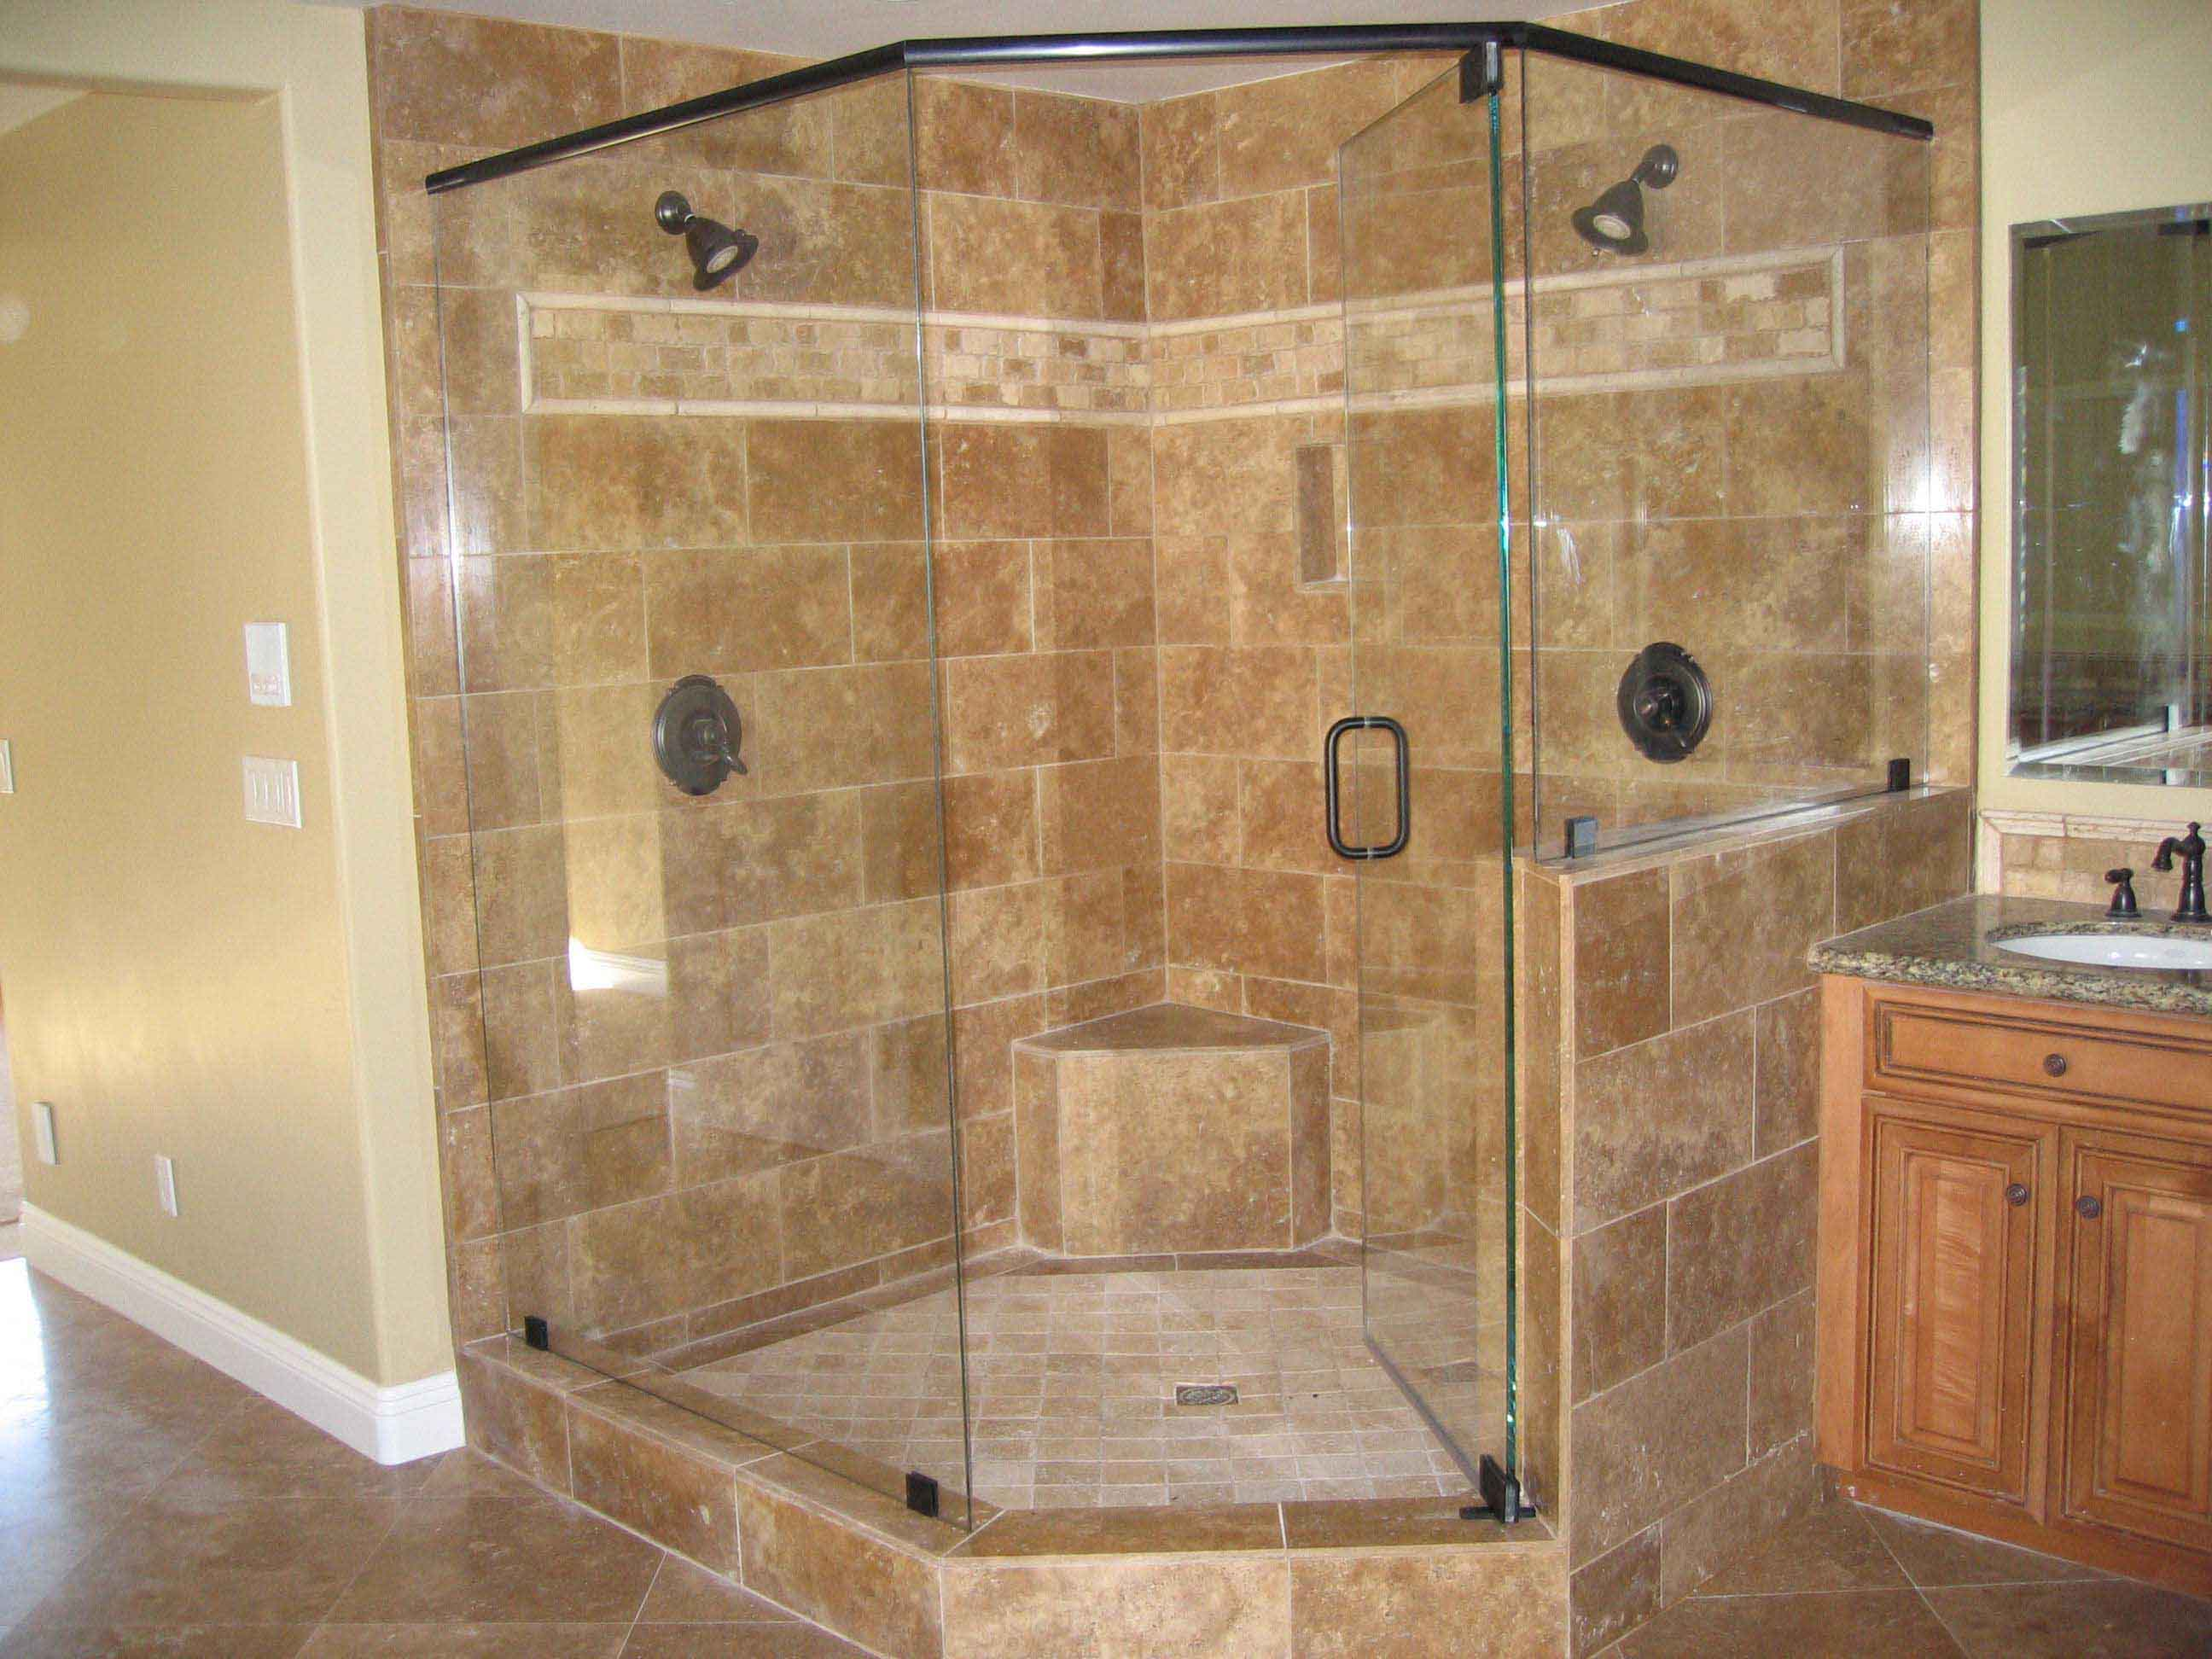 Shower Tile Installation Cost Guide And Best Tips For Contractorculture